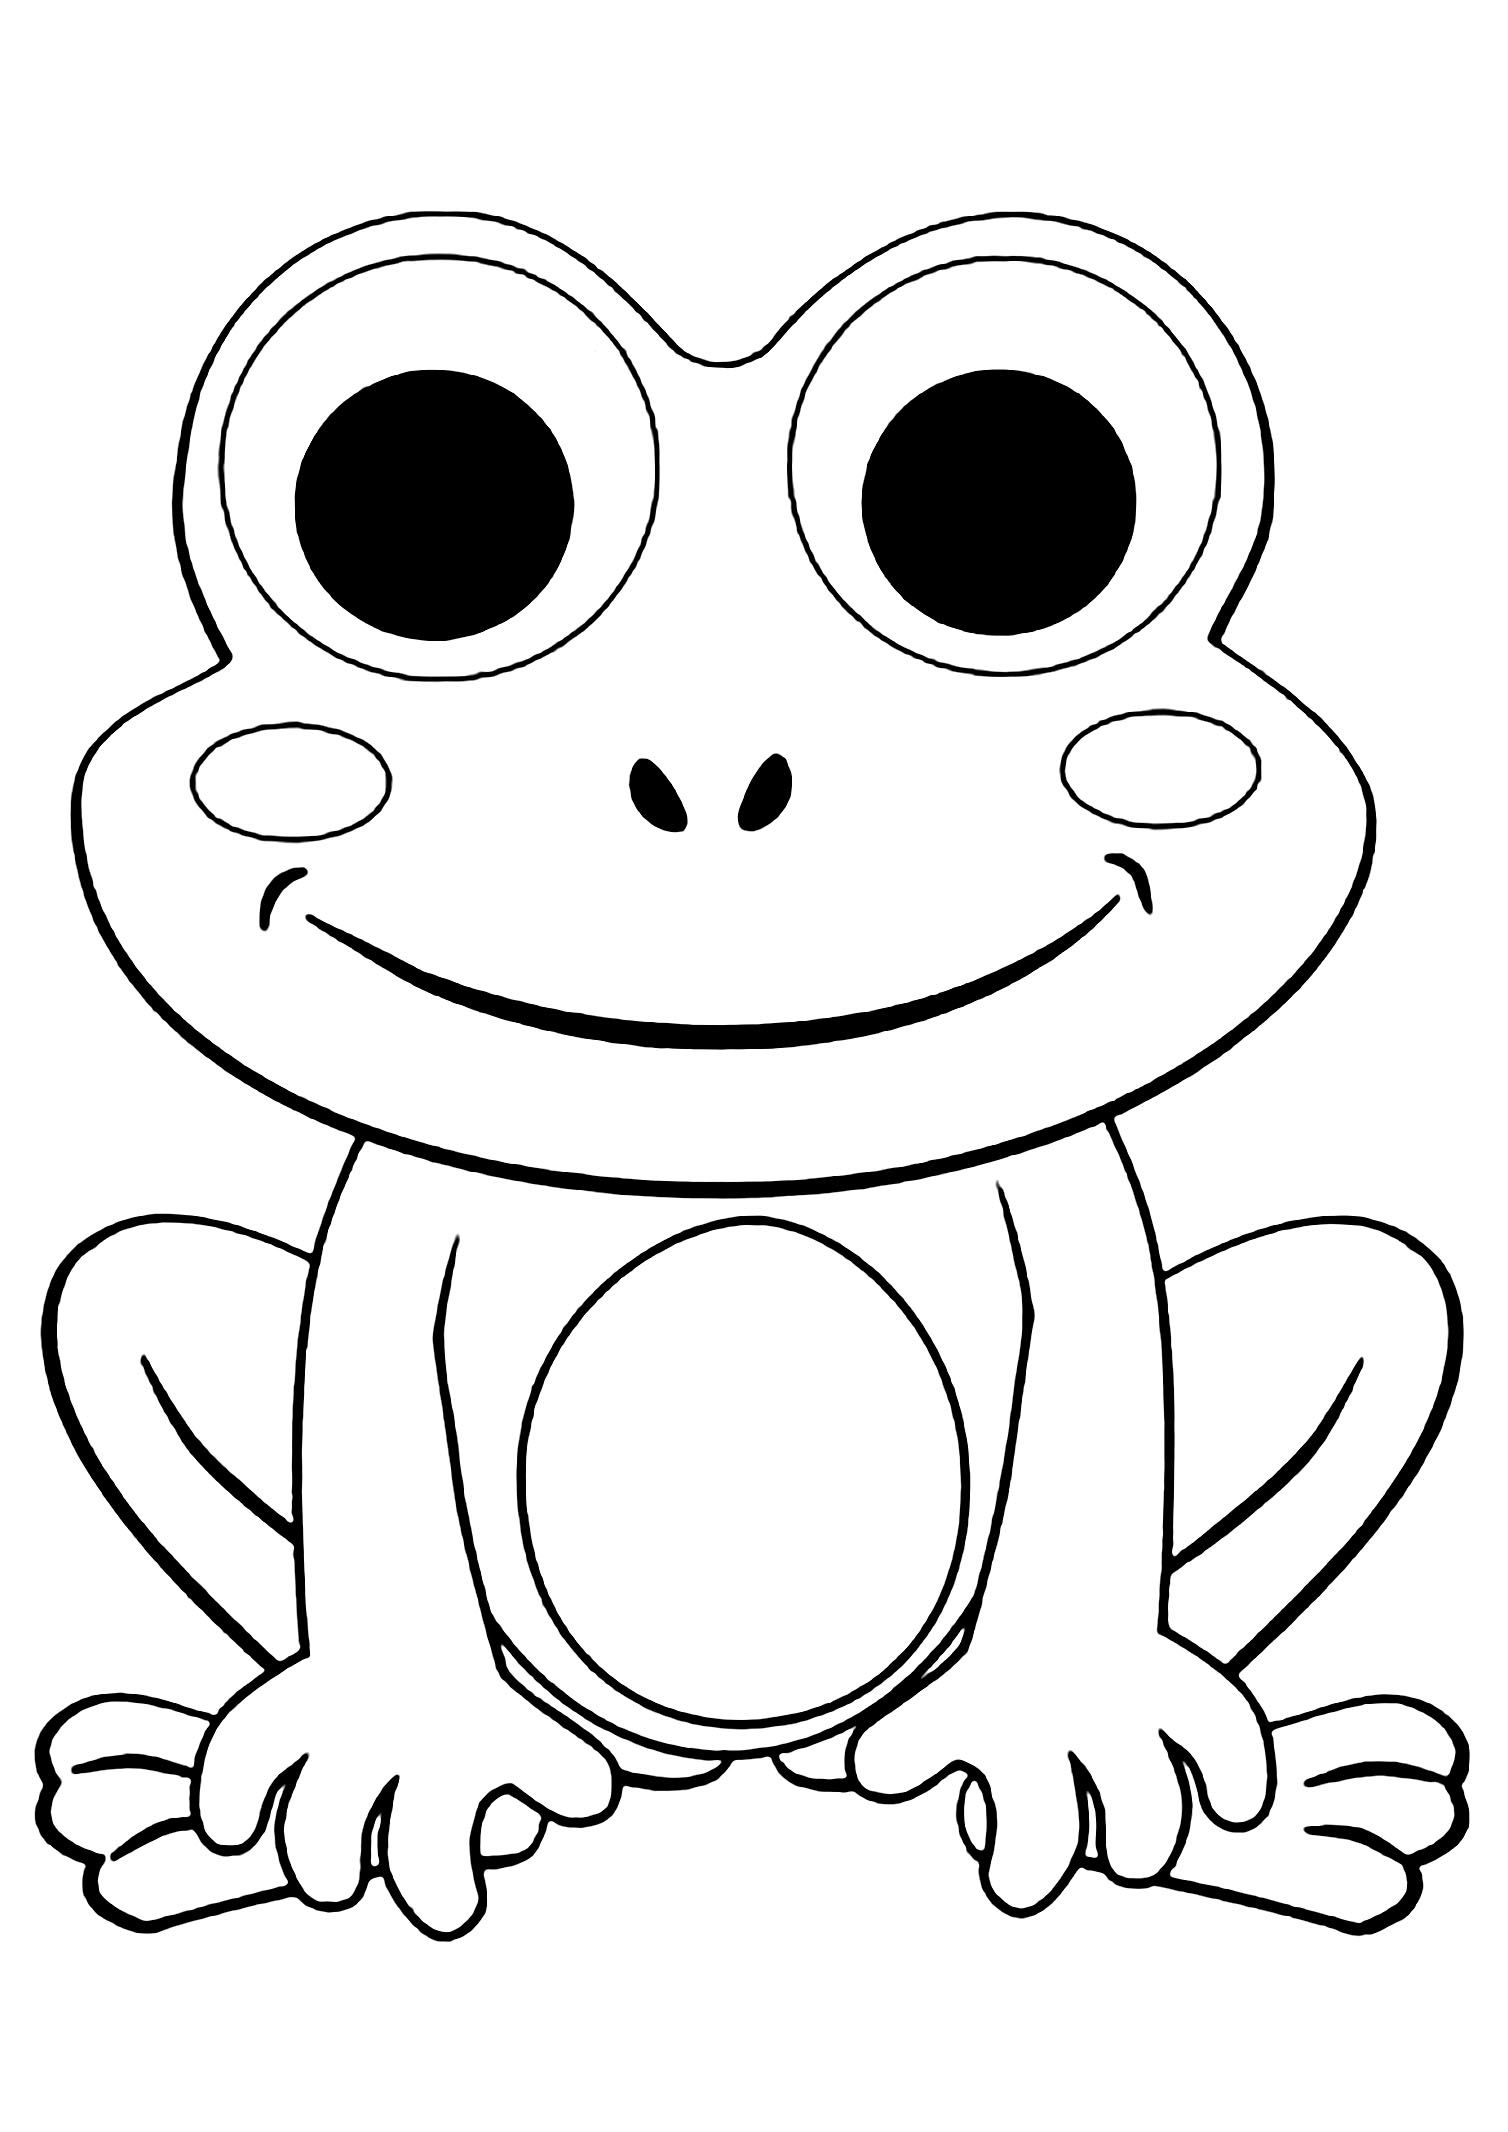 Frogs to print for free Printable Frogs coloring page to